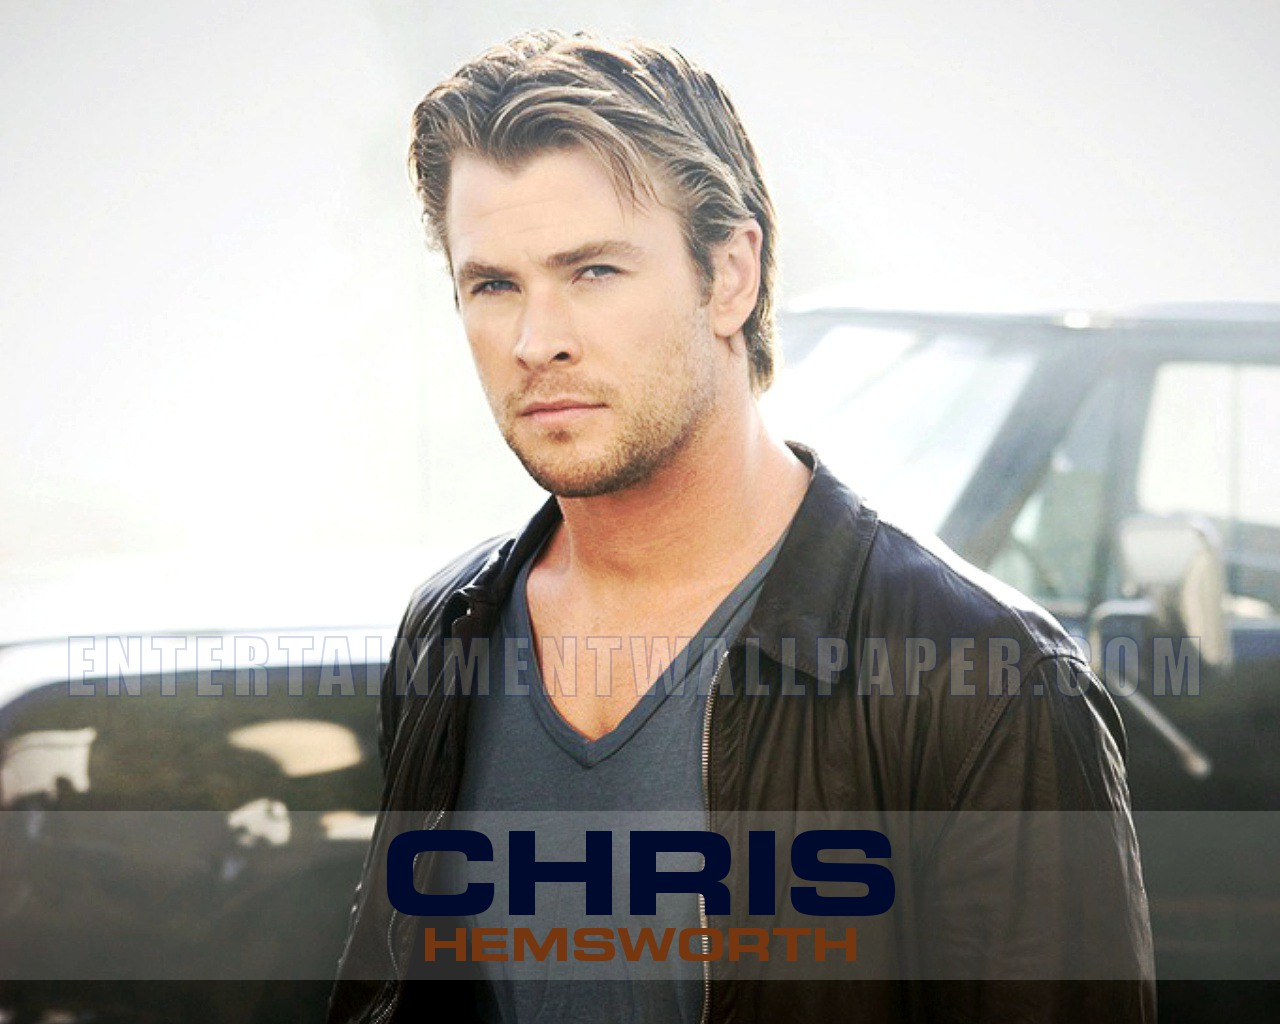 Android HTC Sensation x Chris hemsworth Wallpapers HD